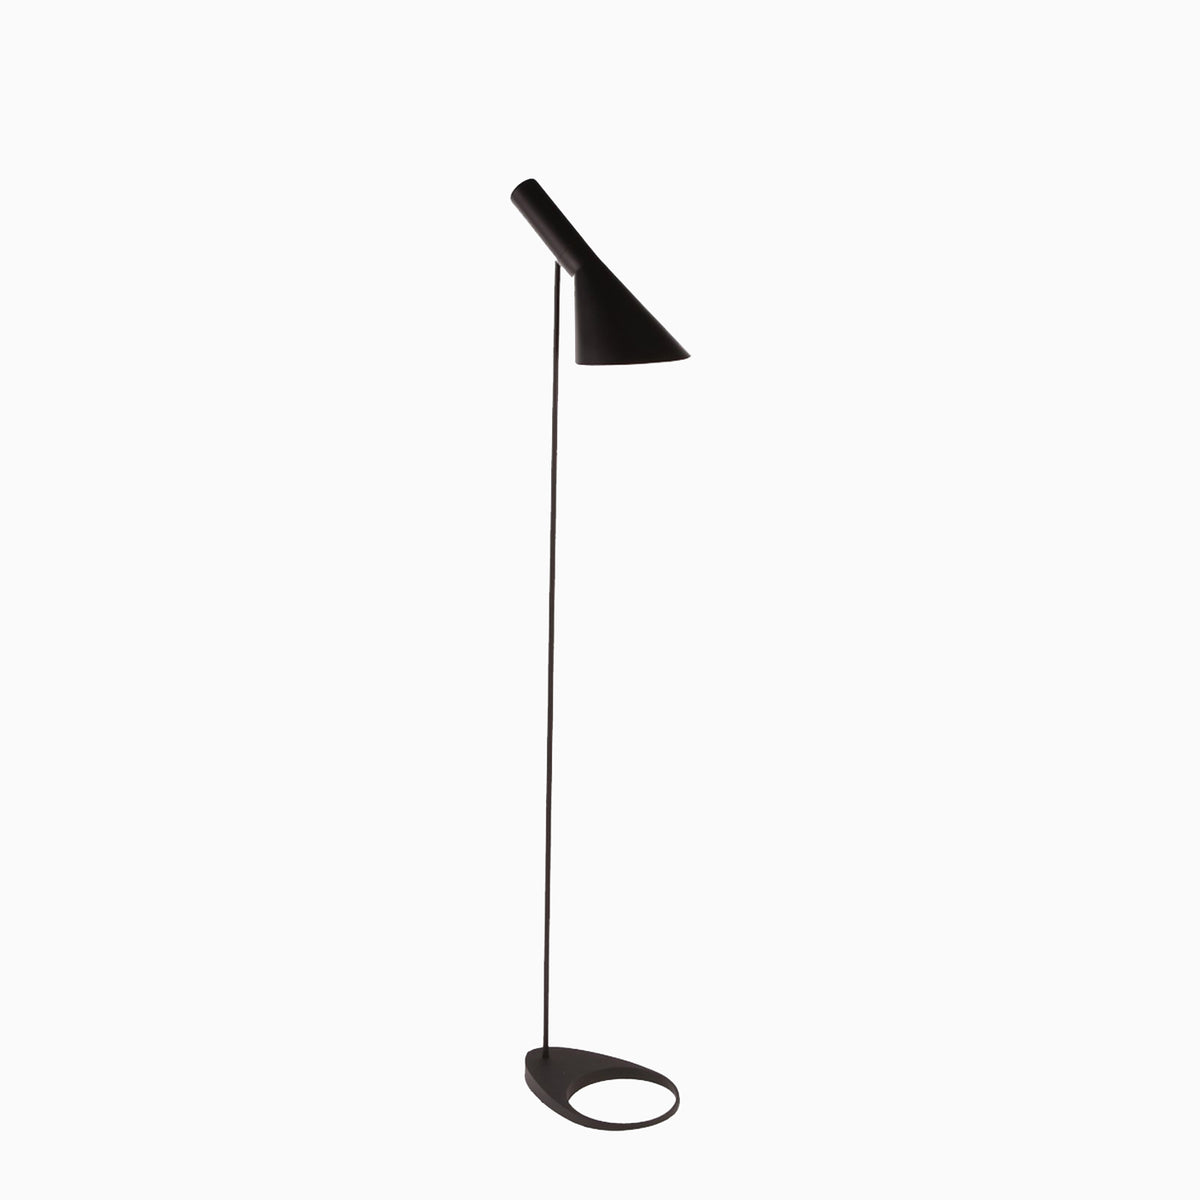 Charcoal Floor Lamp - objects of interest